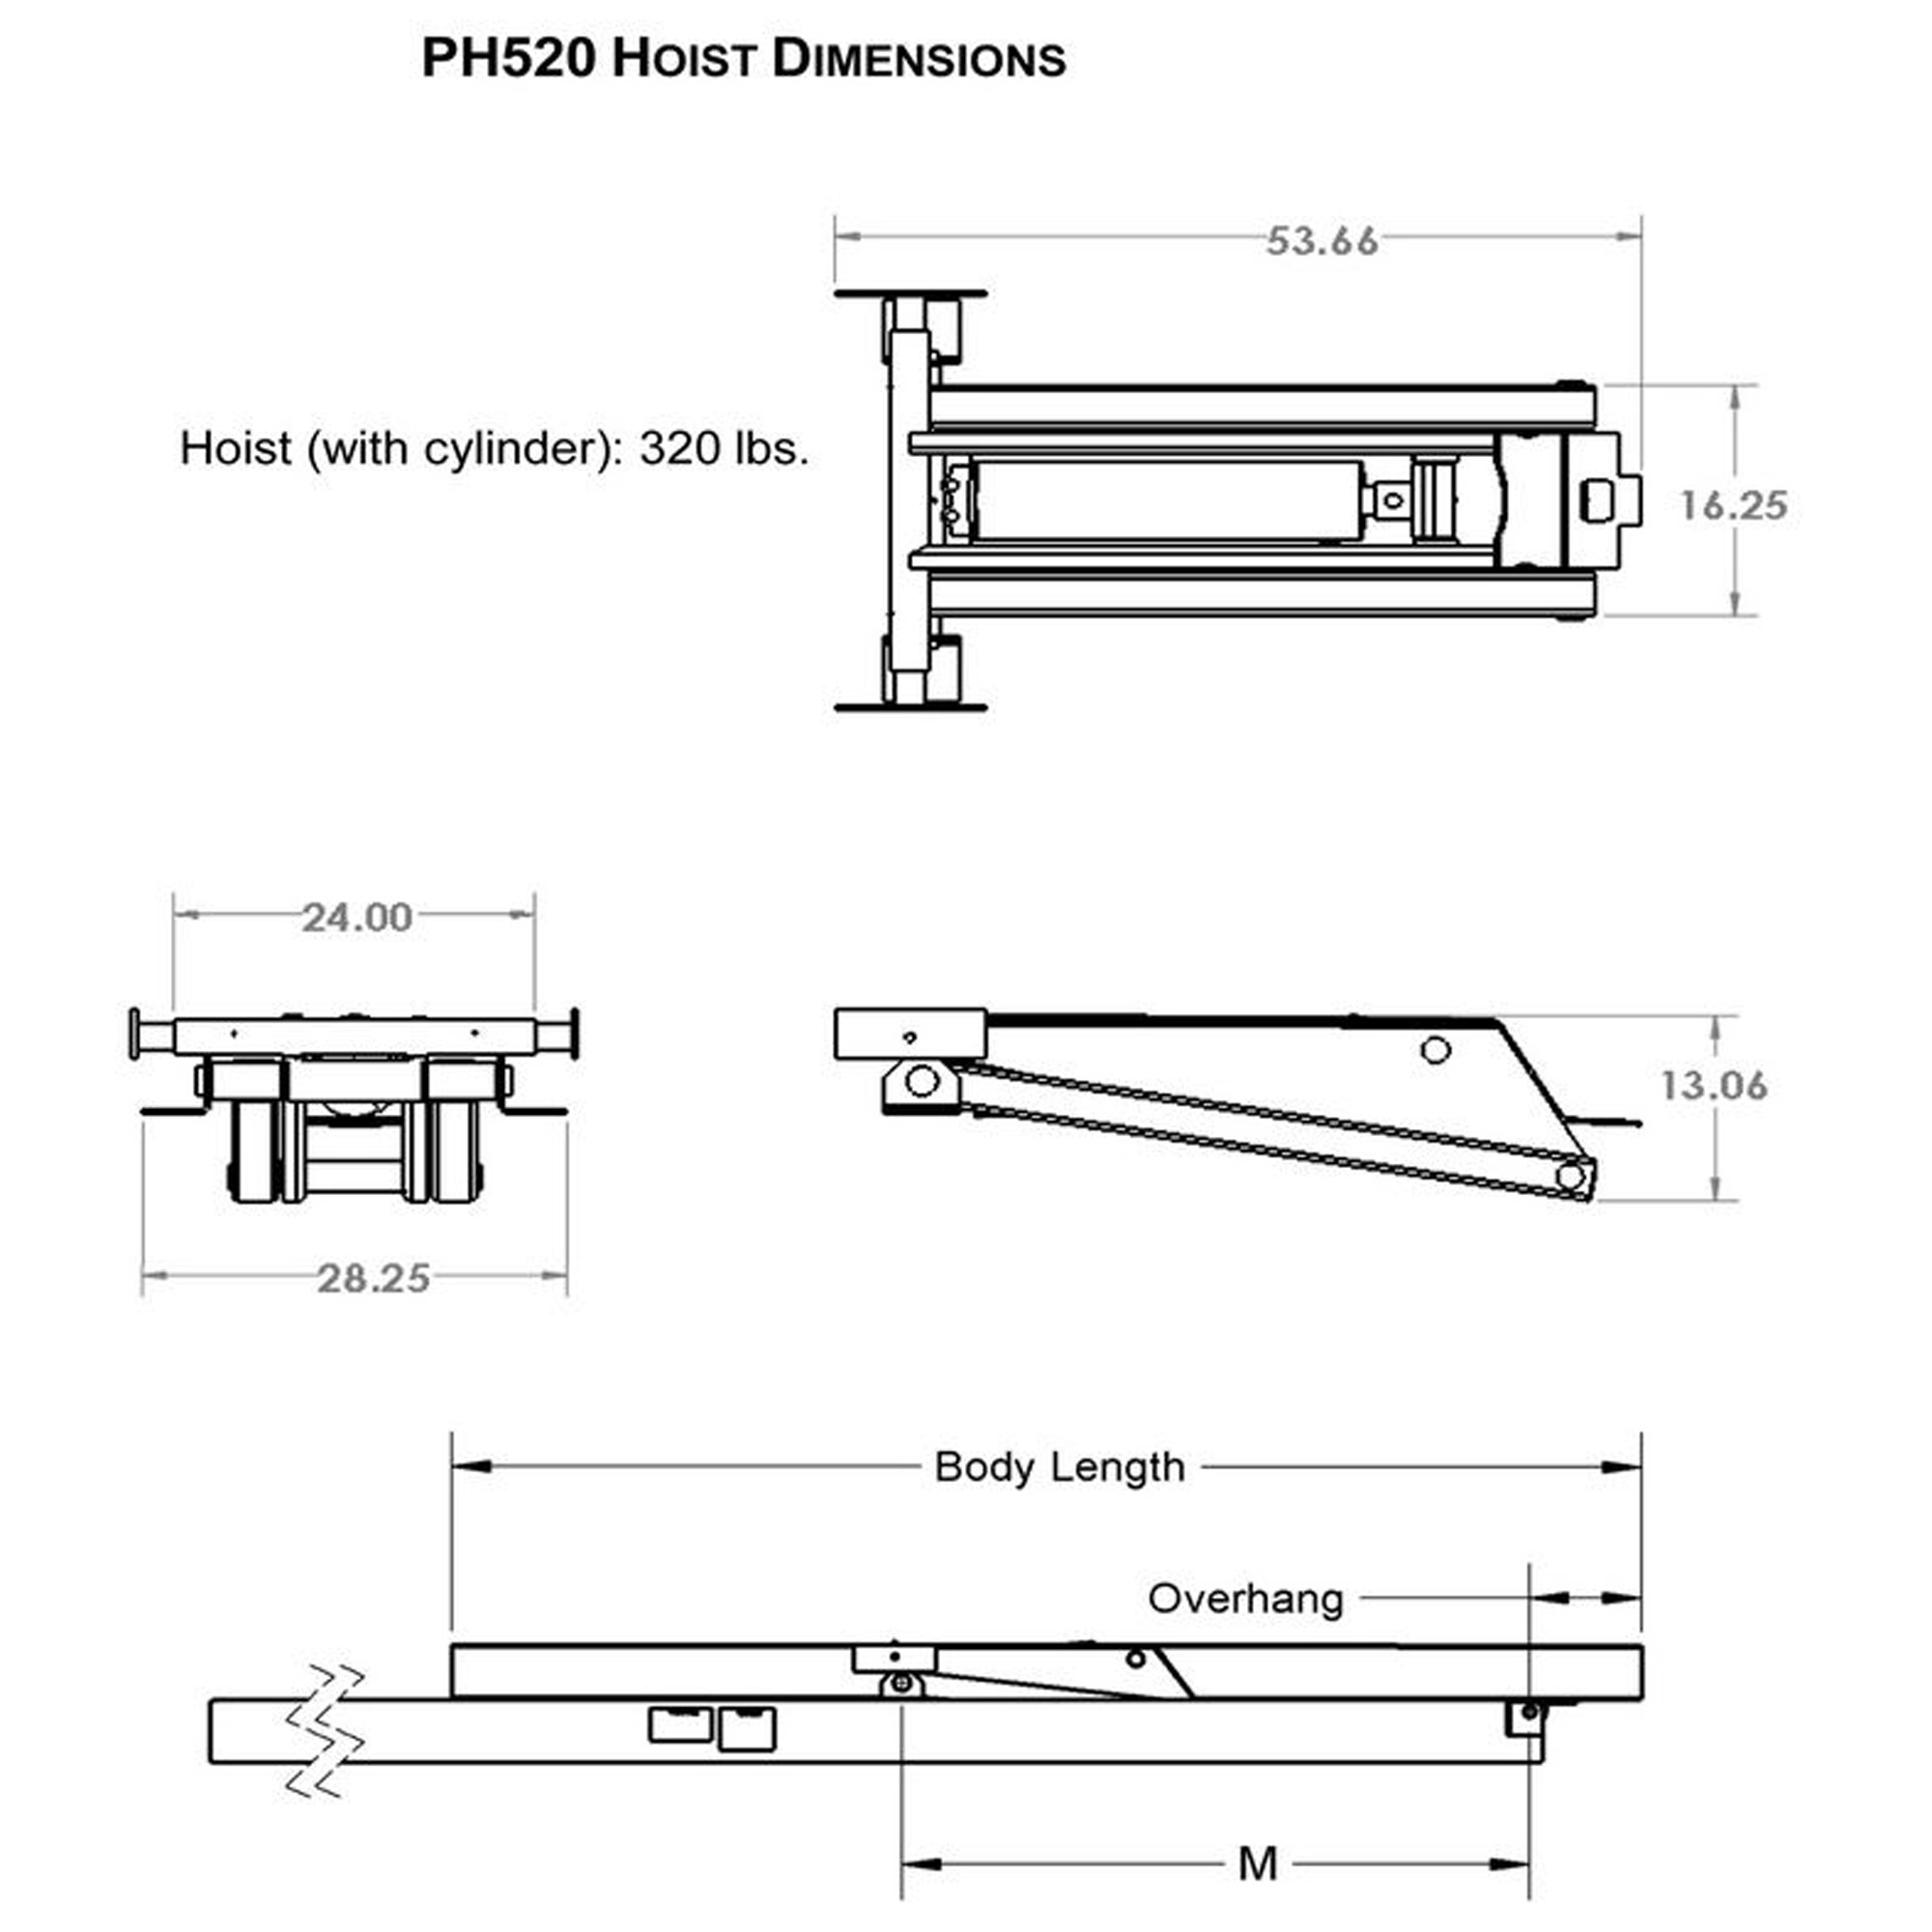 Premium Supply PH520 Power Hoist Dimensions?x88201 10 ton (20,000 lb) dump trailer hydraulic scissor hoist kit ph520 dump trailer hydraulic pump wiring diagram at honlapkeszites.co